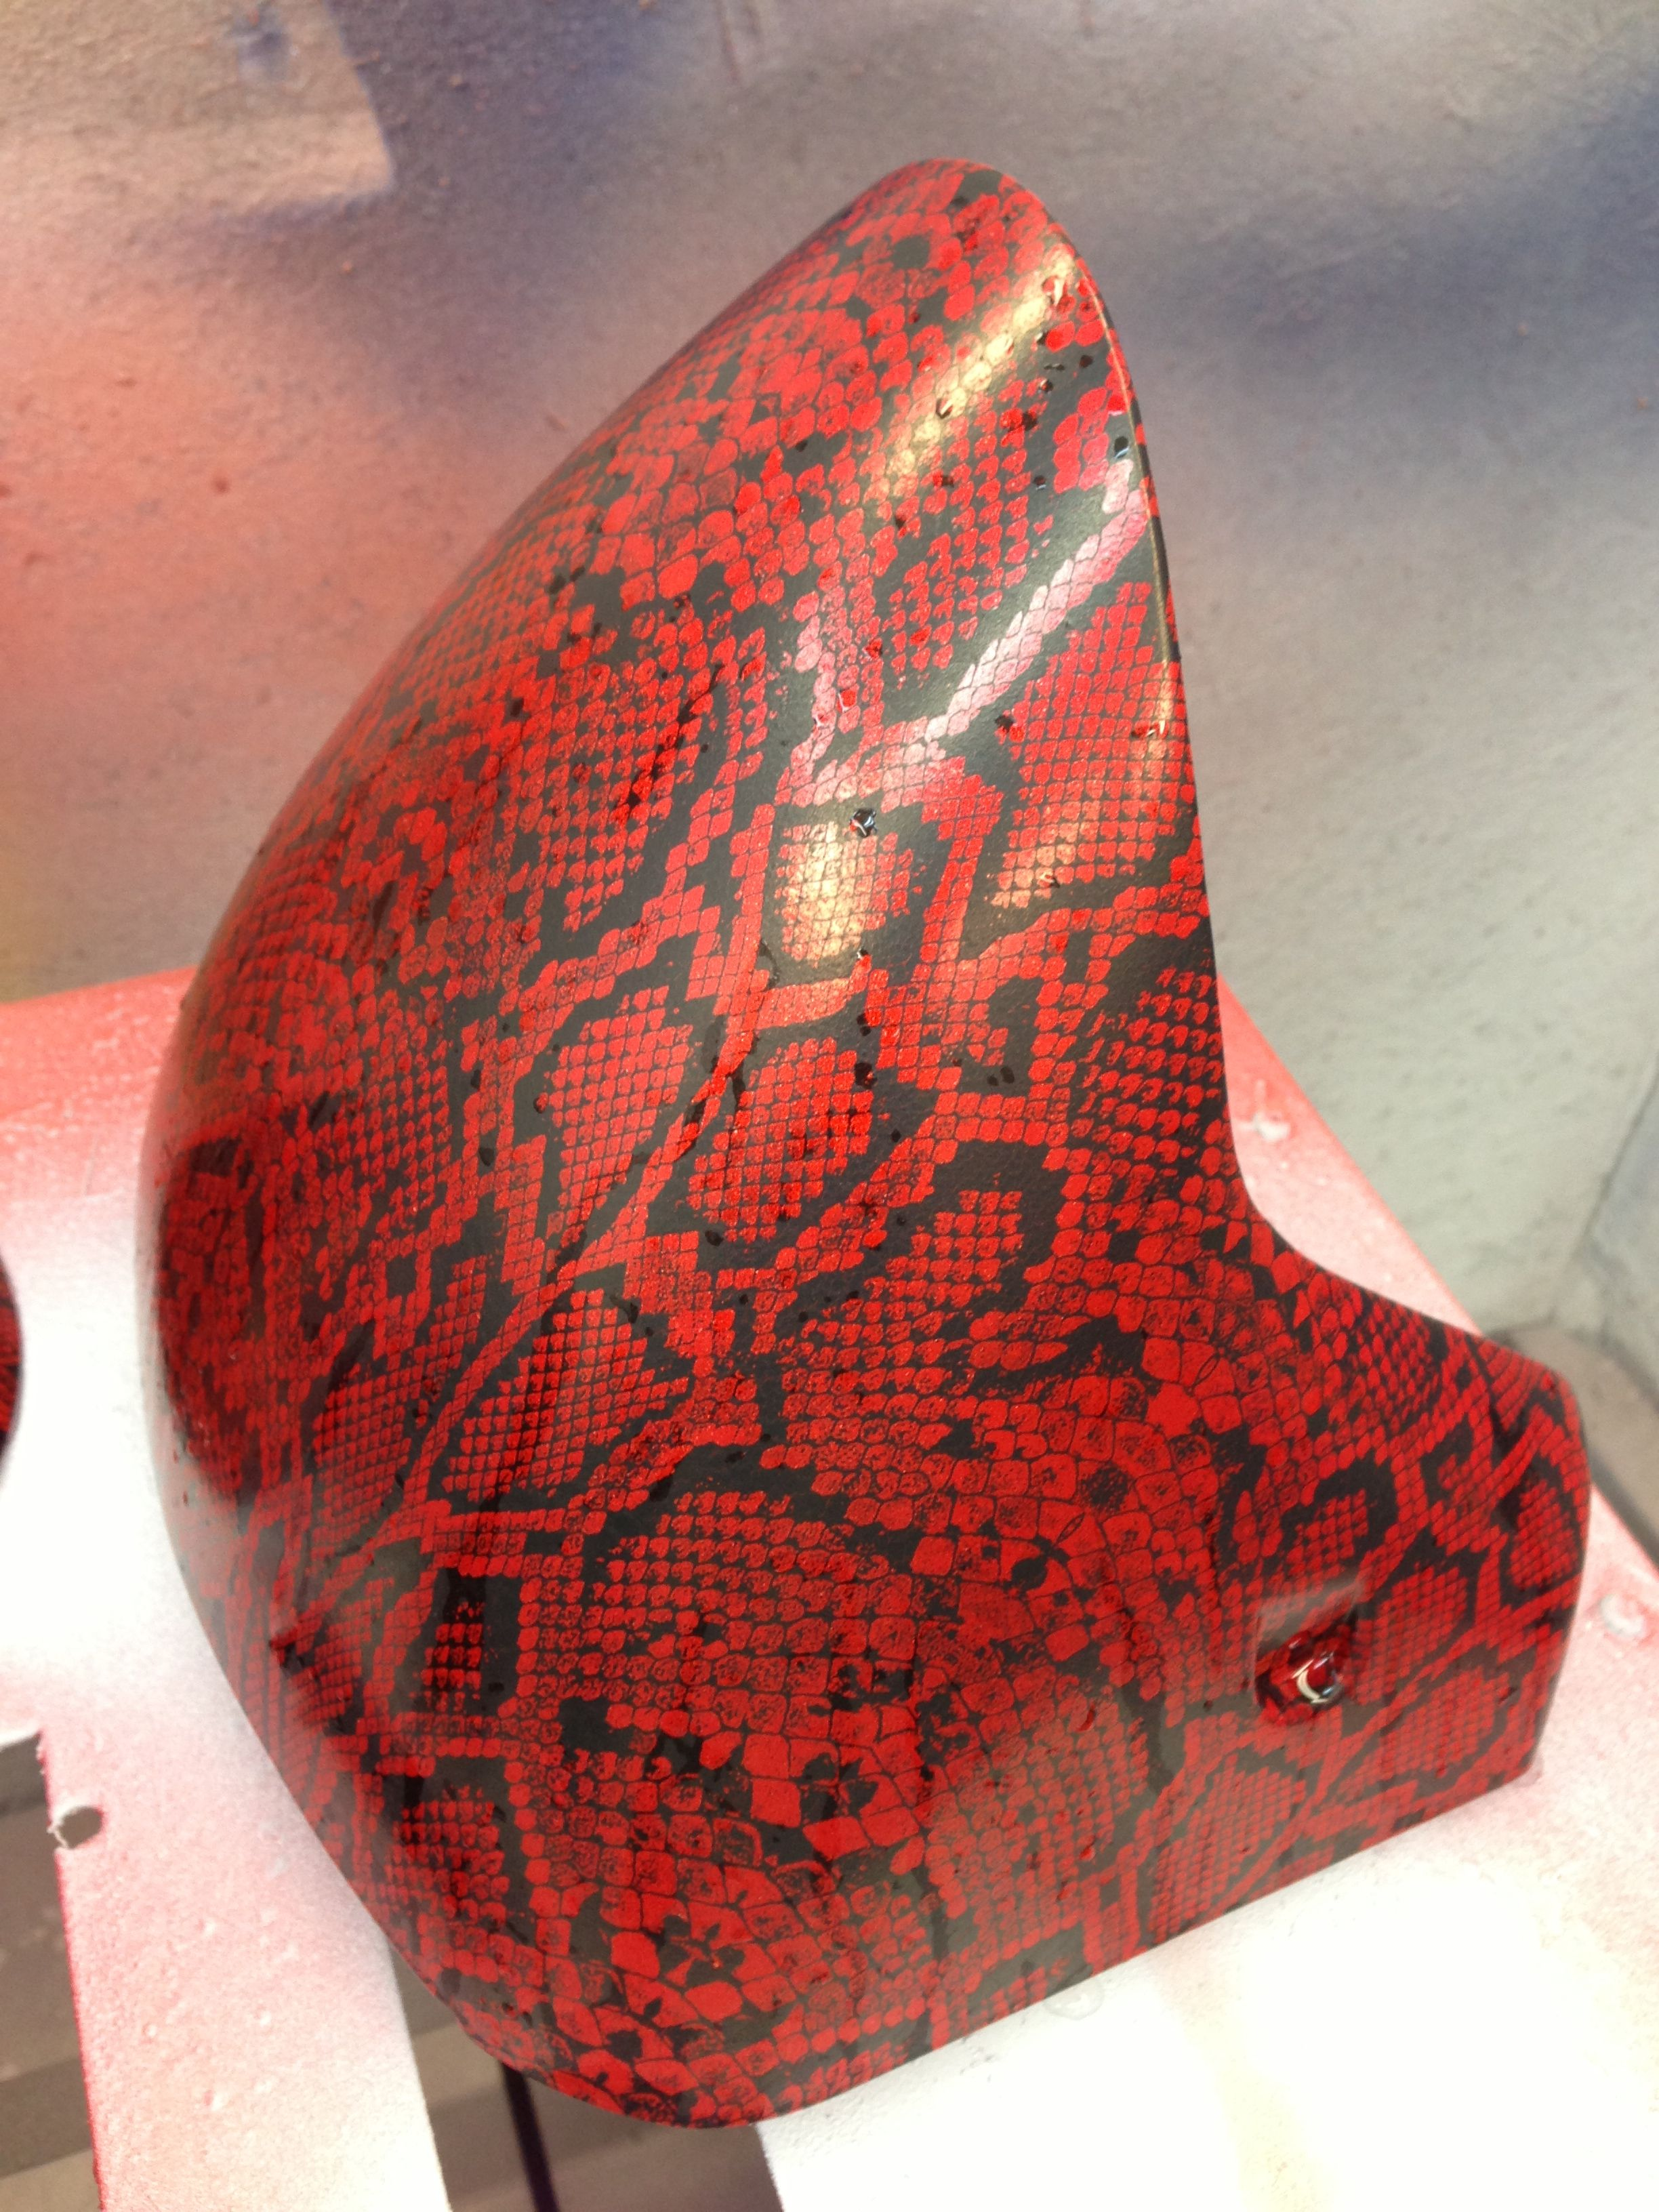 Motorcycle fender in candy apple red with snake skin print